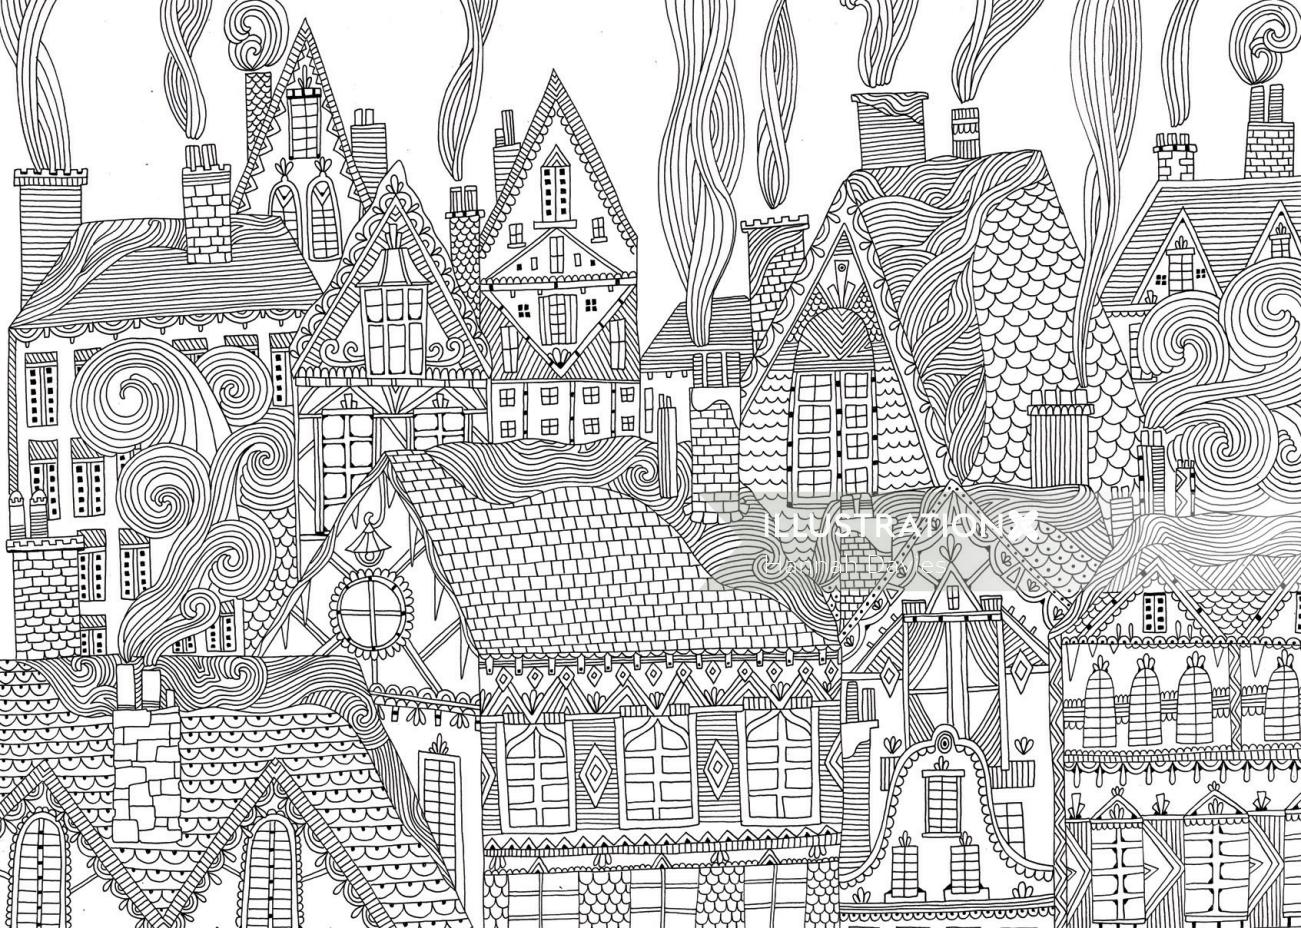 ink and brush made Winter houses